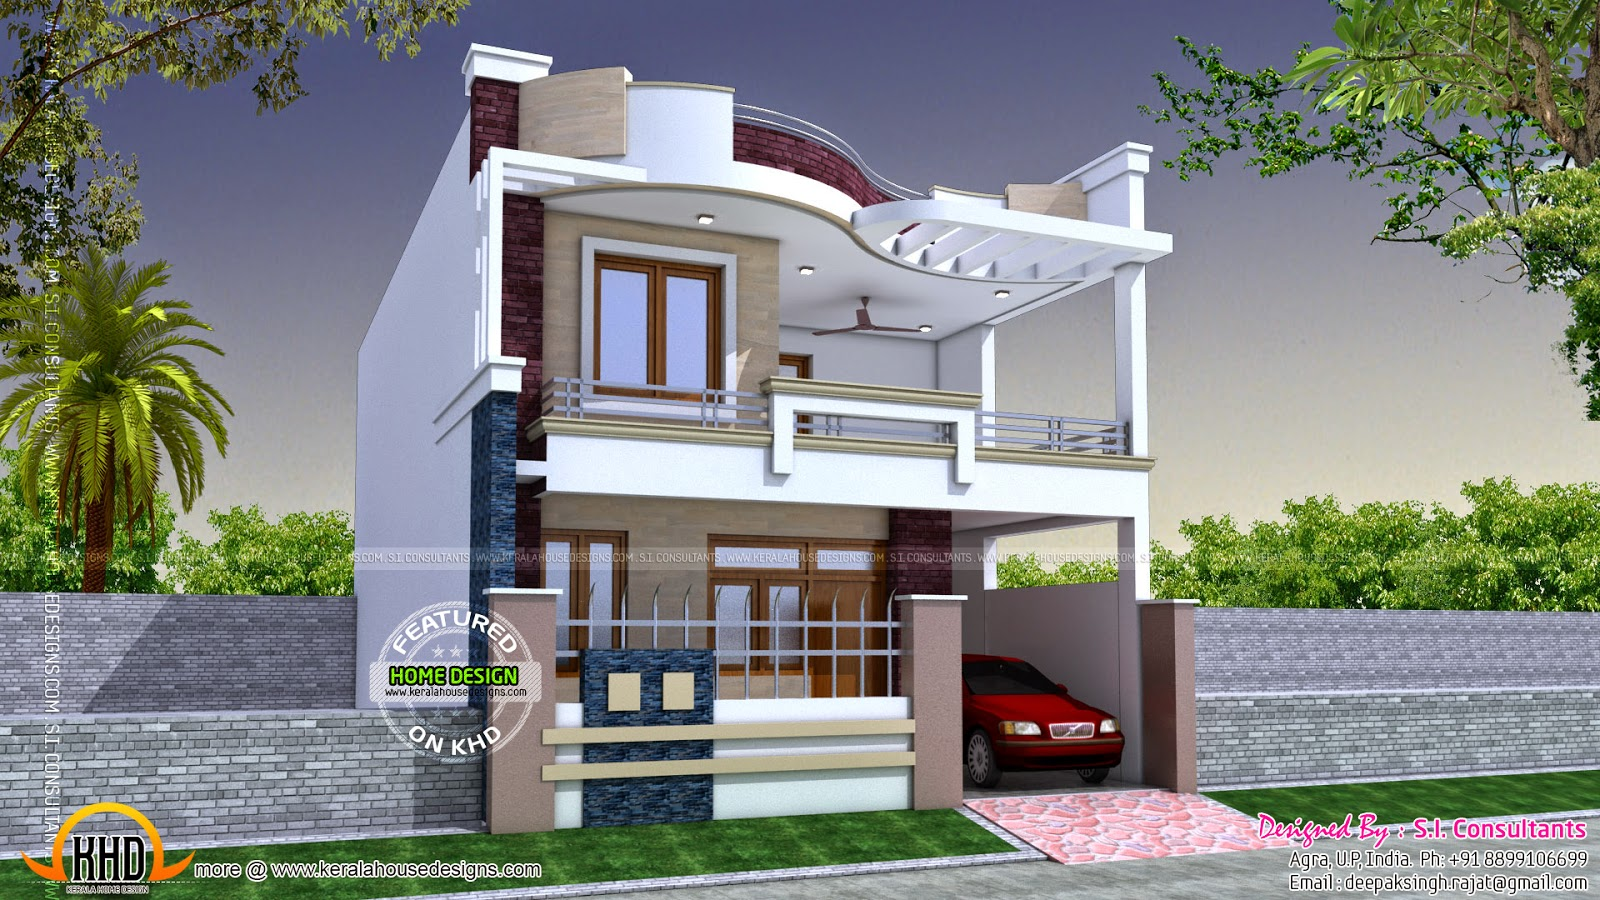 Modern indian home design kerala home design and floor plans for 2 bedroom house designs in india